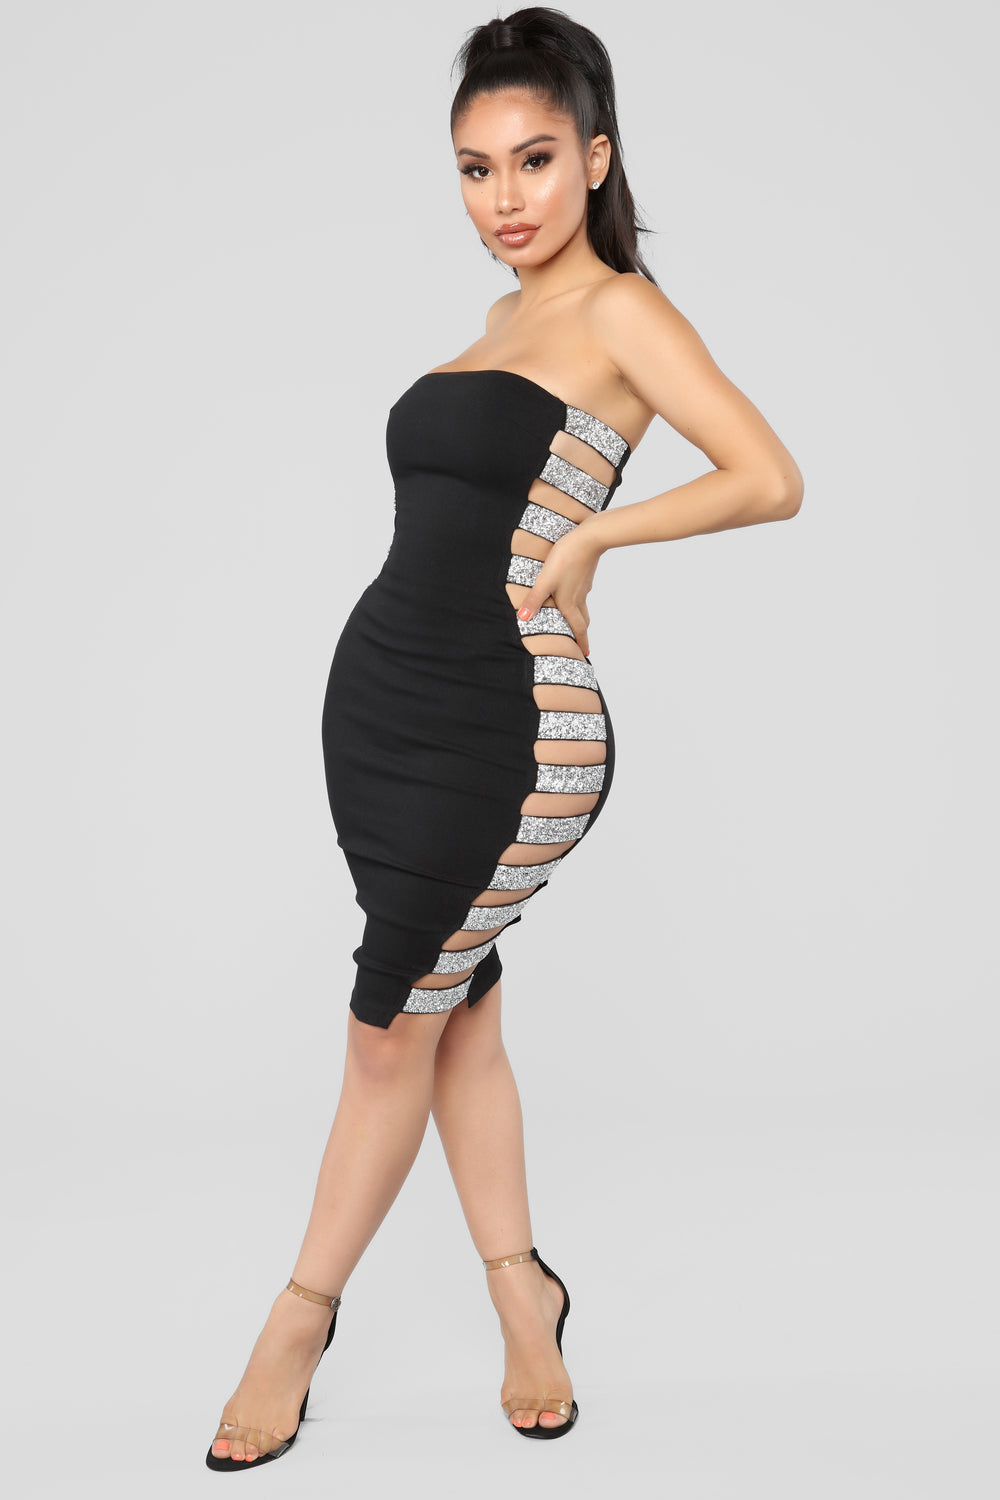 Shower Me With Jewels Midi Dress - Black/Silver